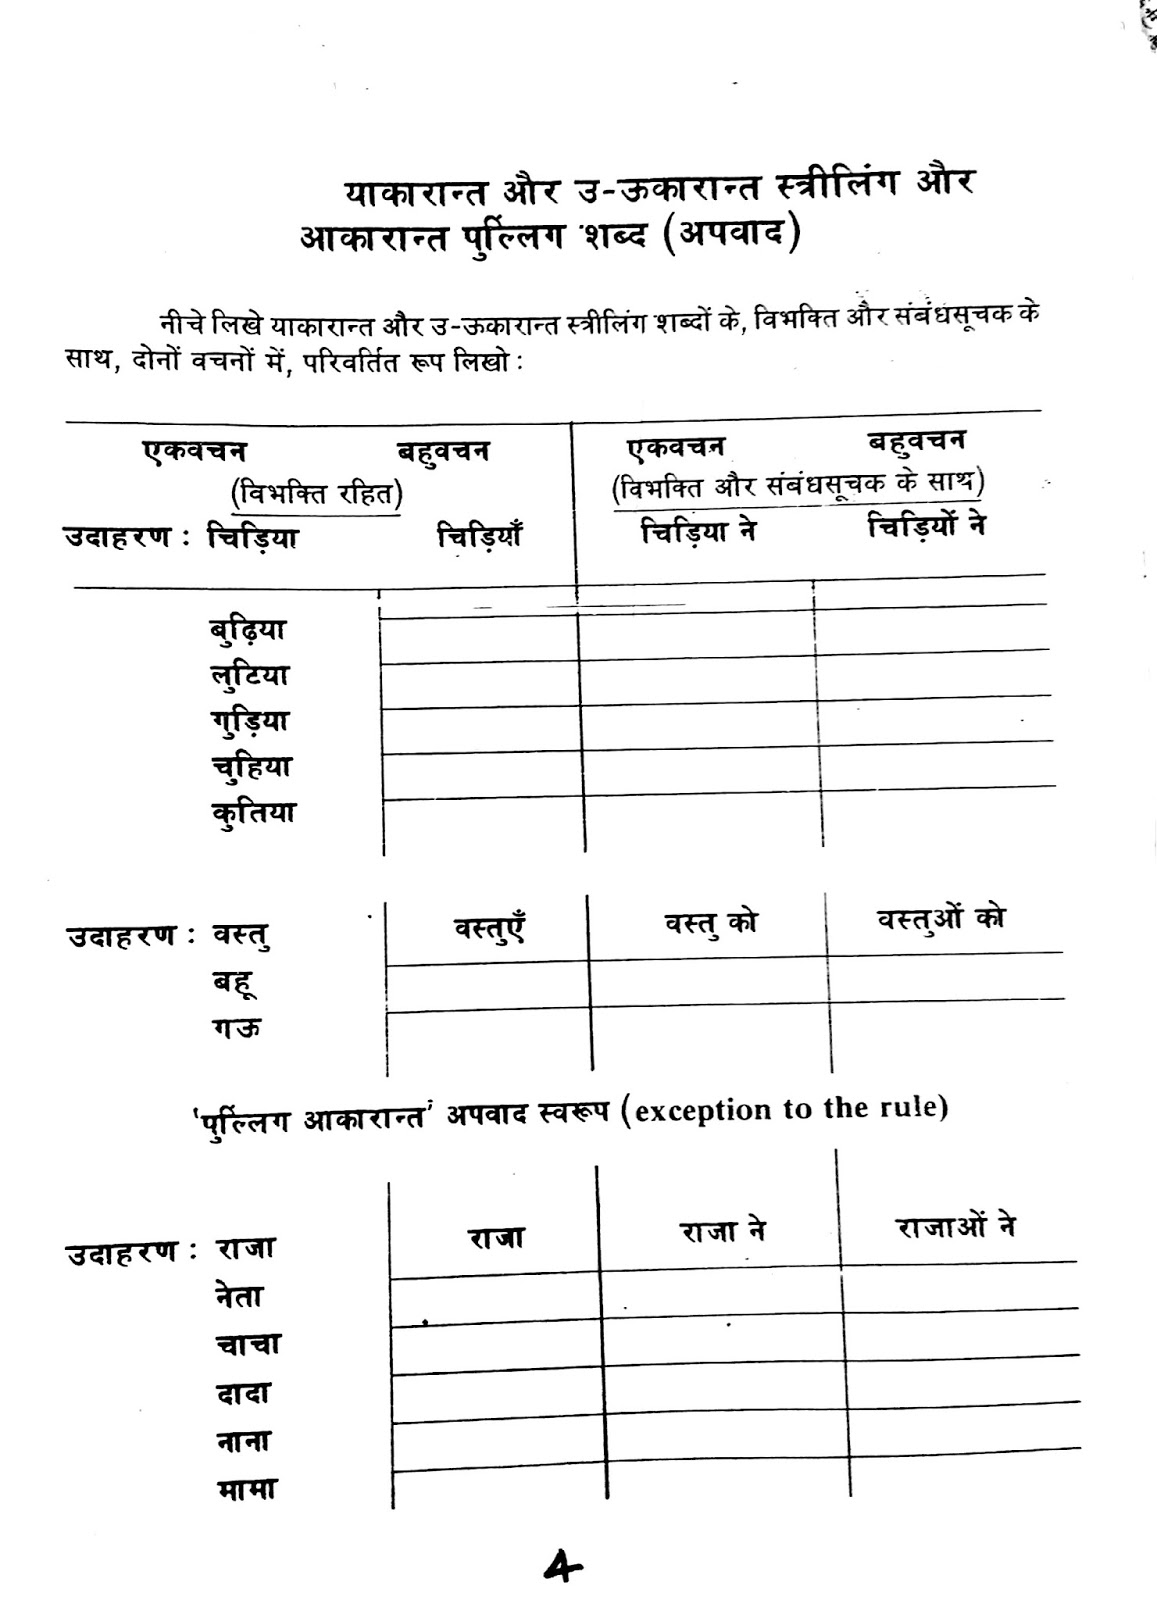 Hindi Grammar Work Sheet Collection For Classes 5 6 7 Amp 8 Gender Masculine And Feminine Work